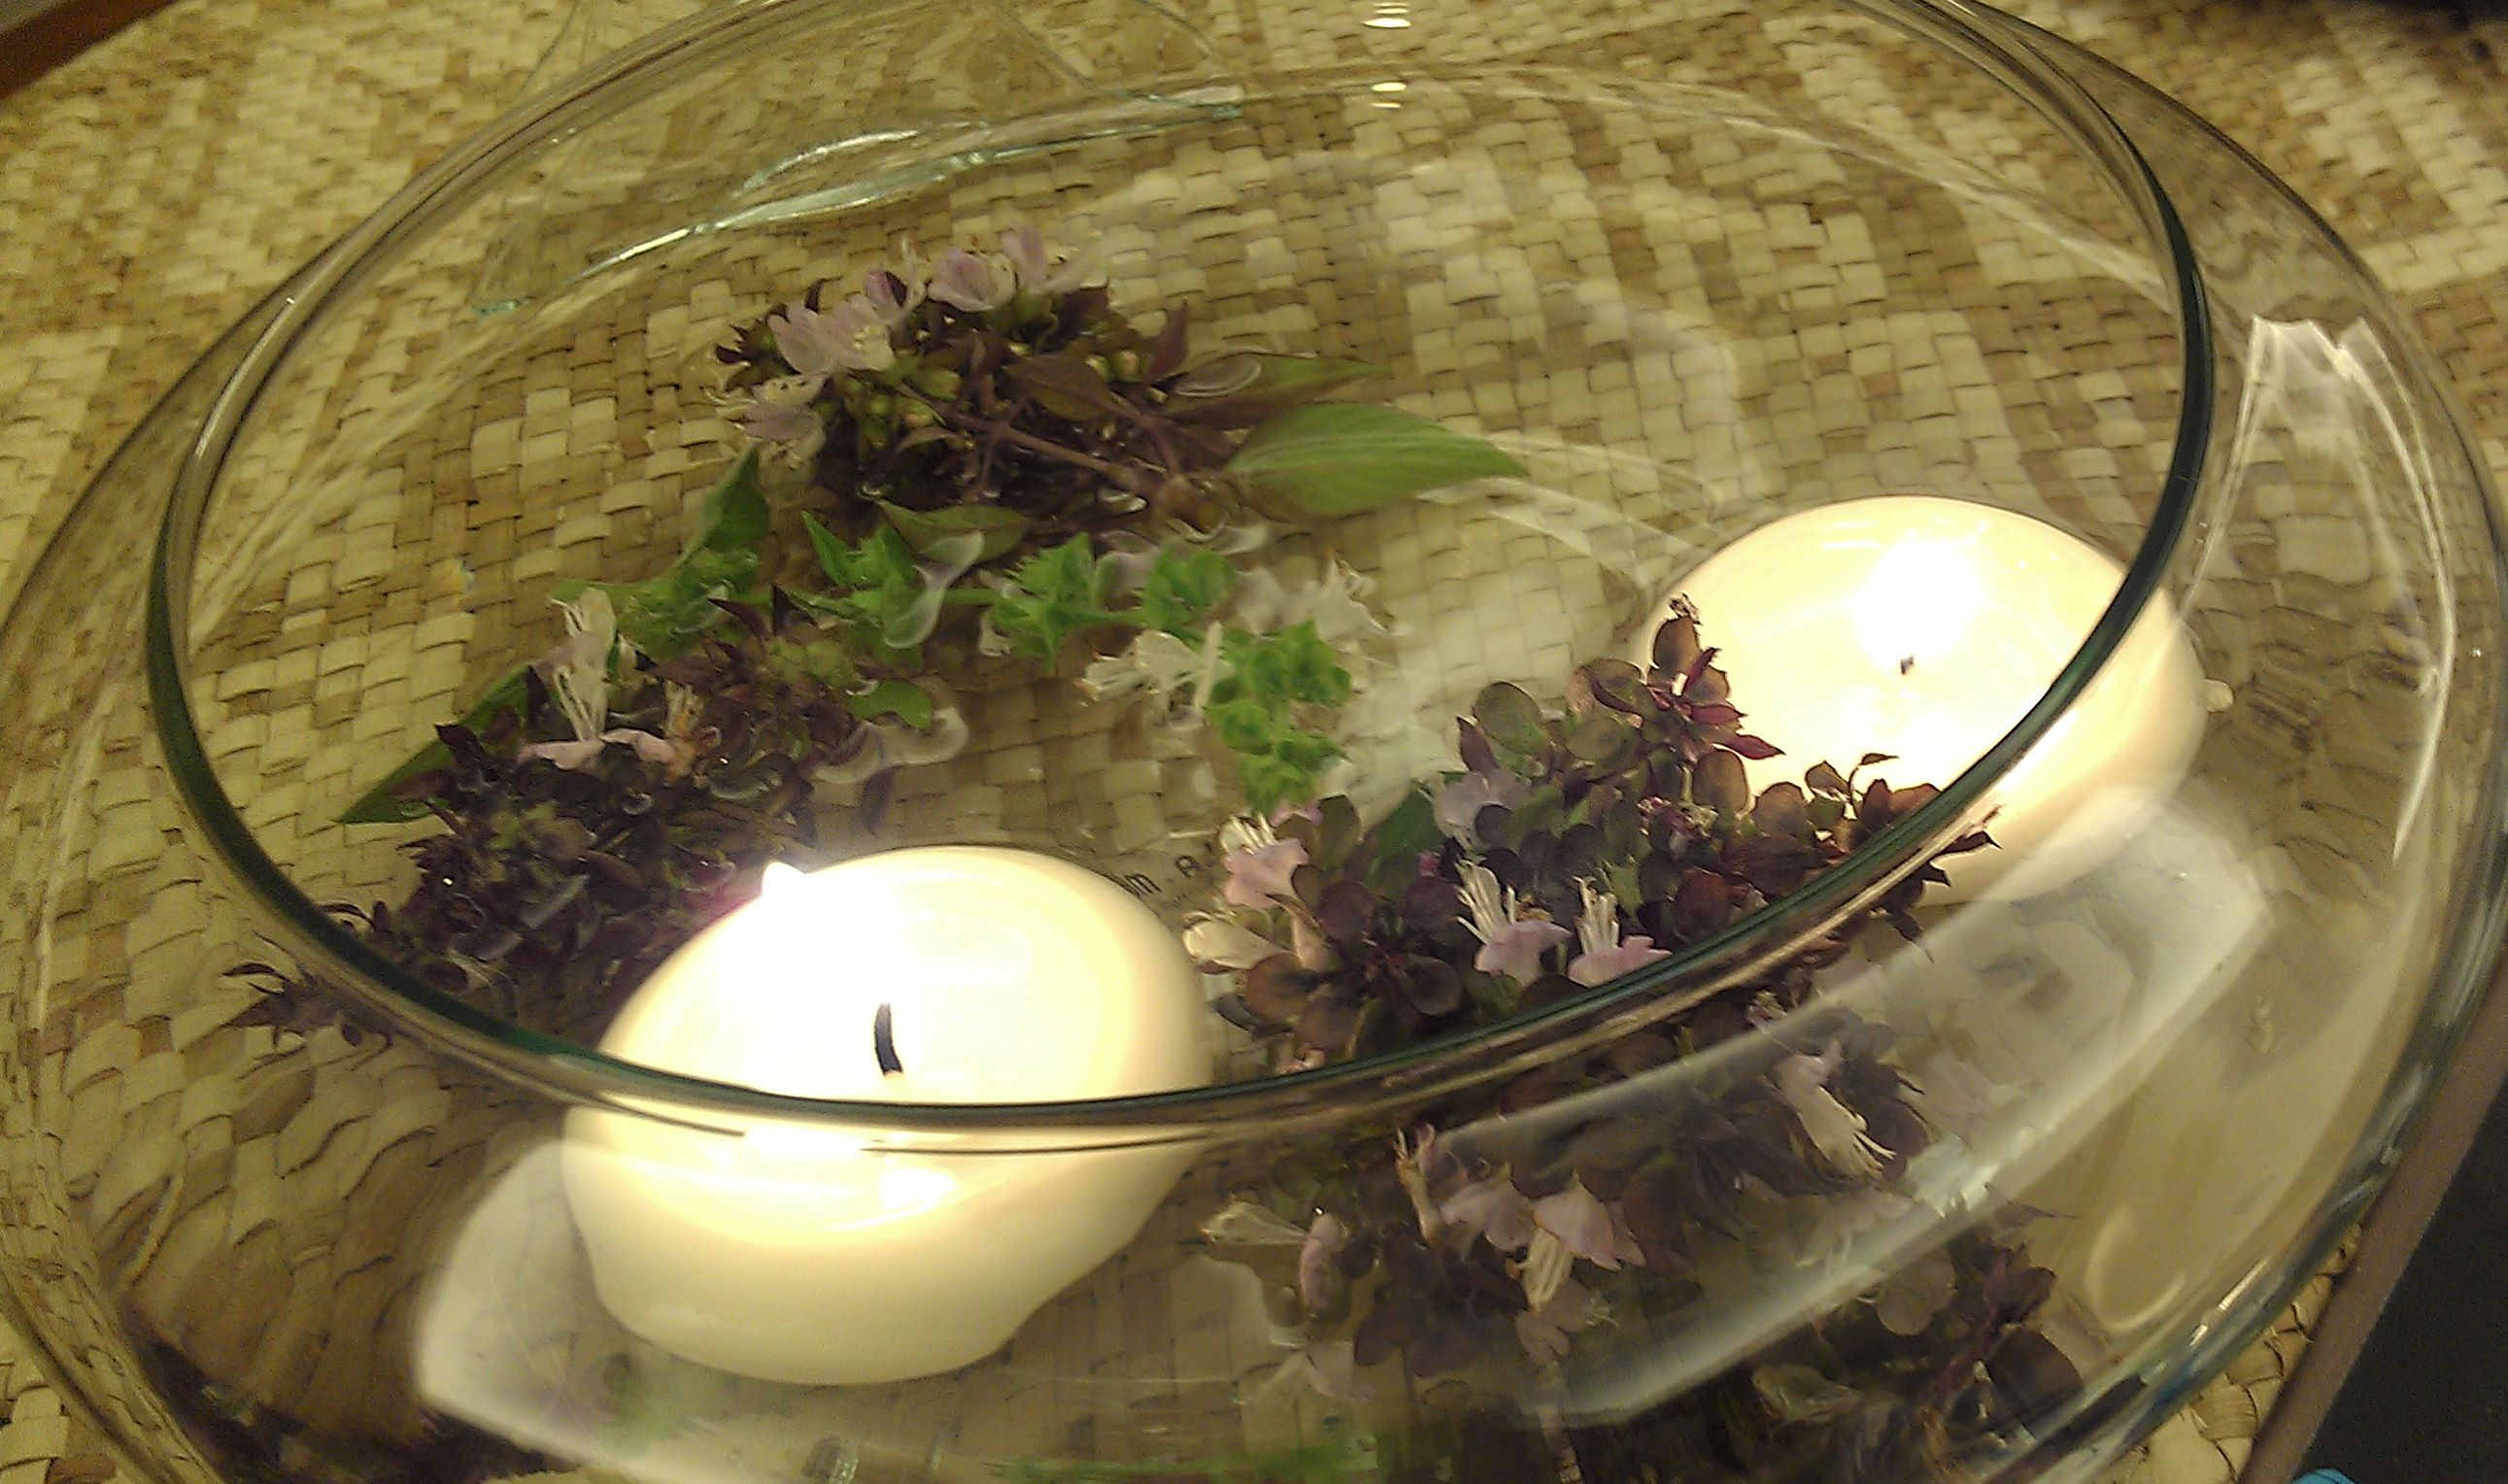 didn't have time to buy flowers for your table setting?  pinch some basil blossoms from your pot!  smells fragrant too!